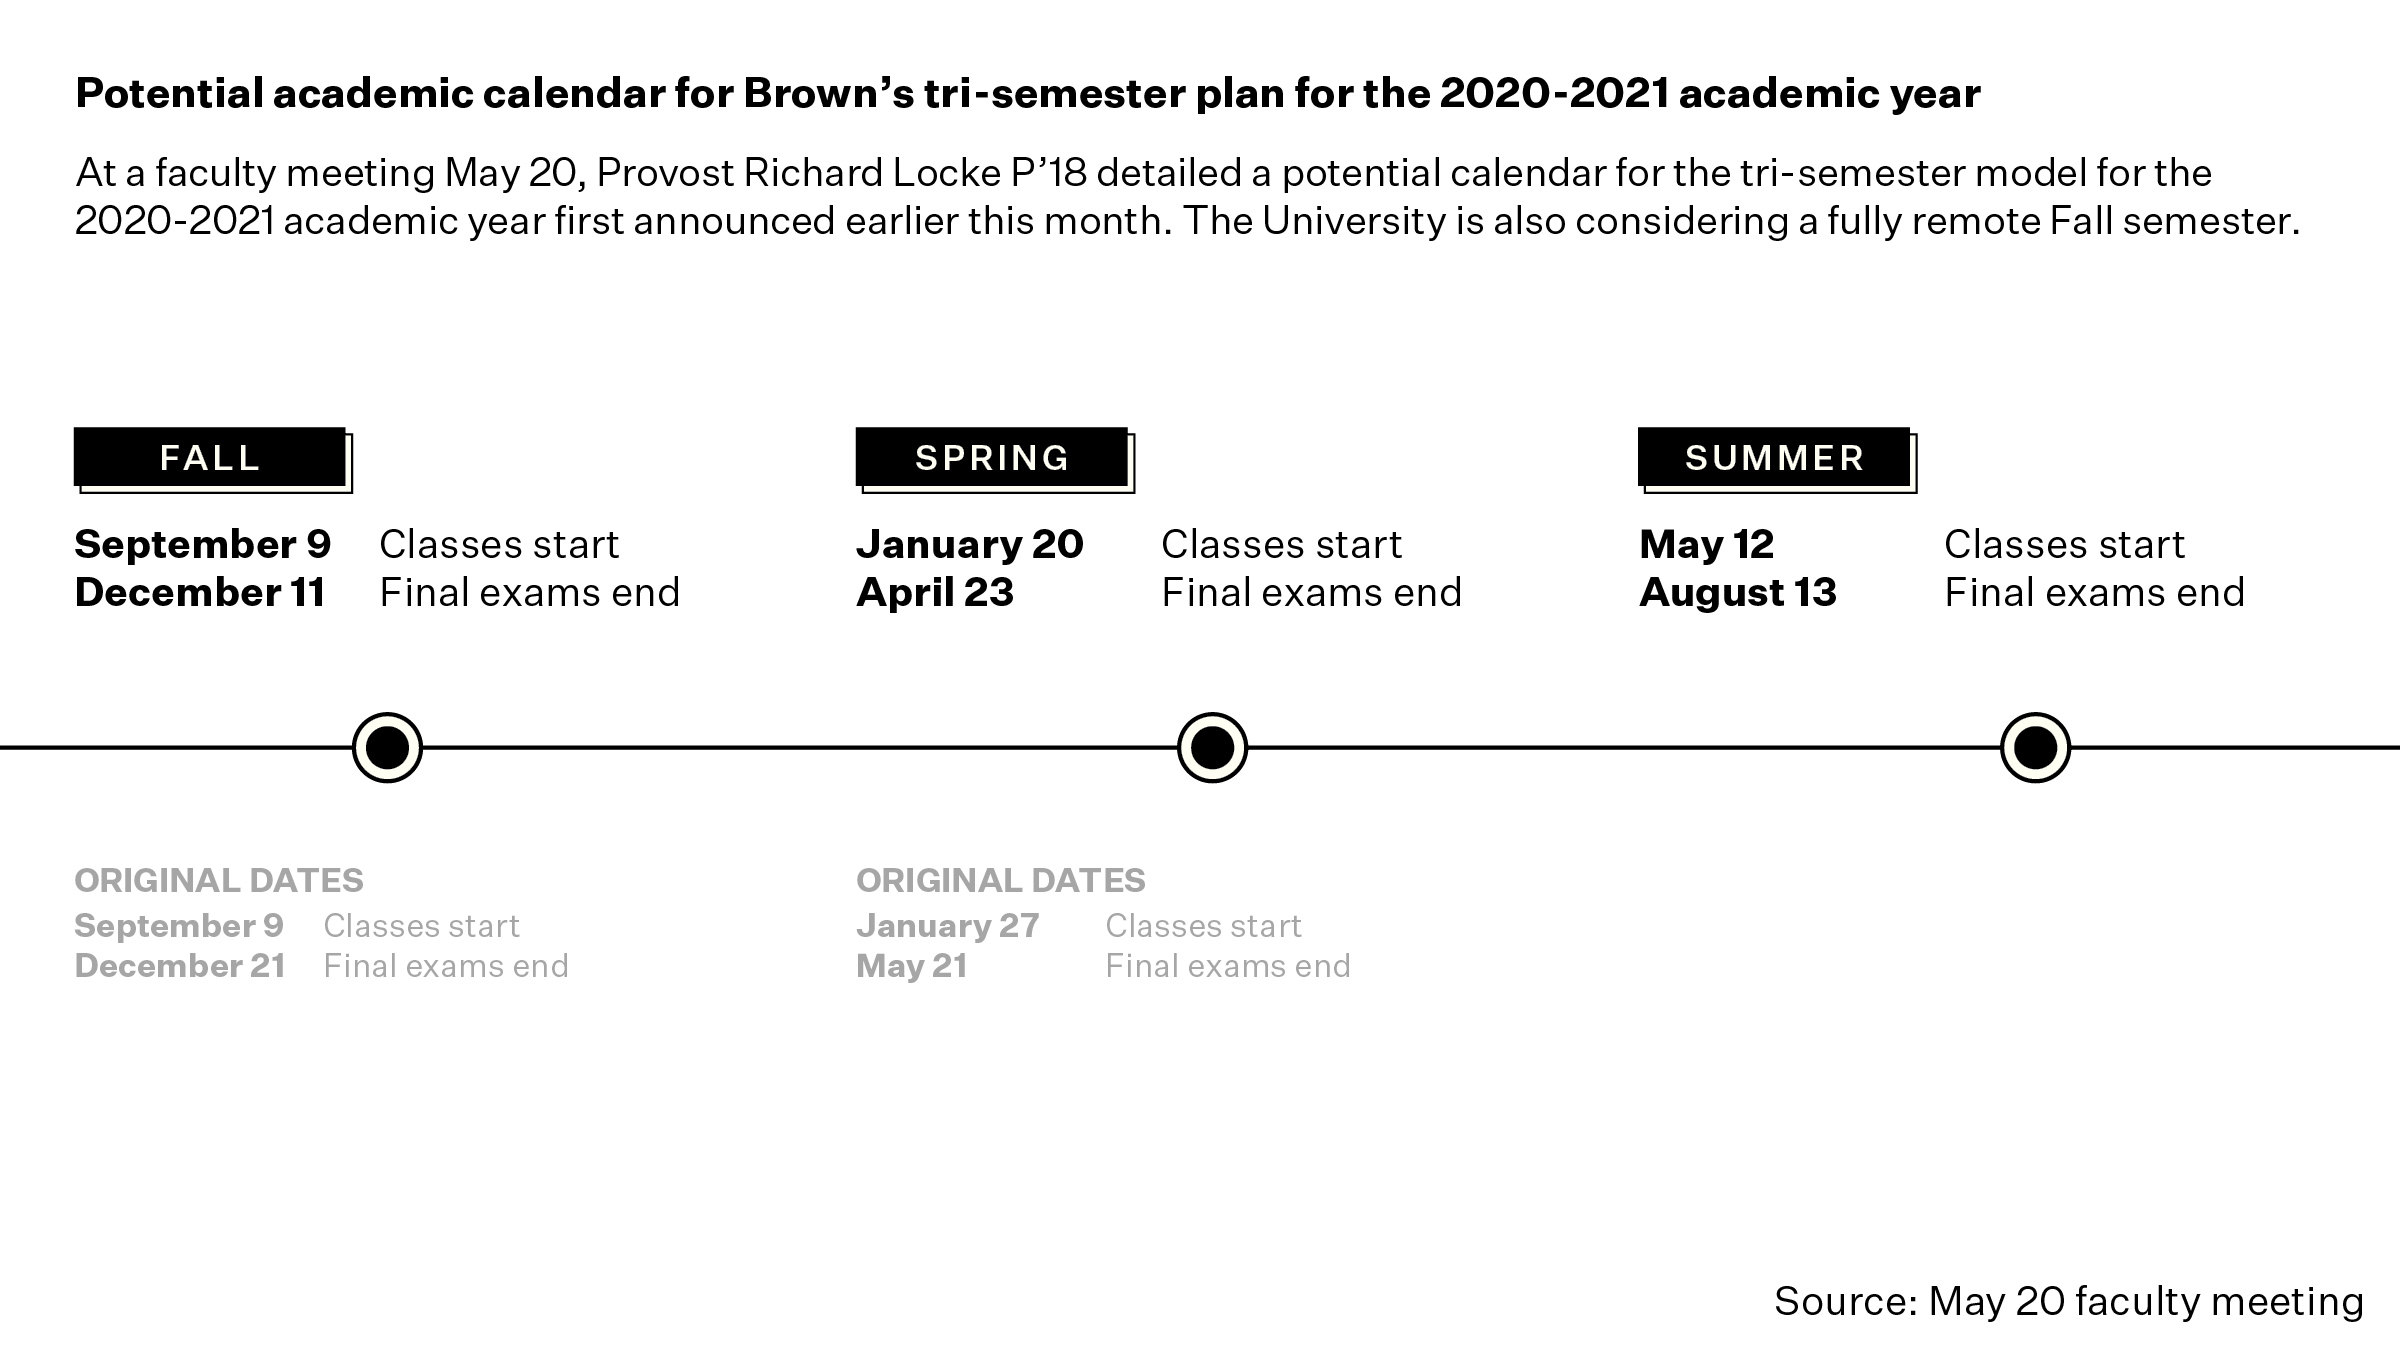 No Spring Break, Shorter Terms: Brown Outlines Potential intended for University Of Rhode Island 2021 2020 Calendar